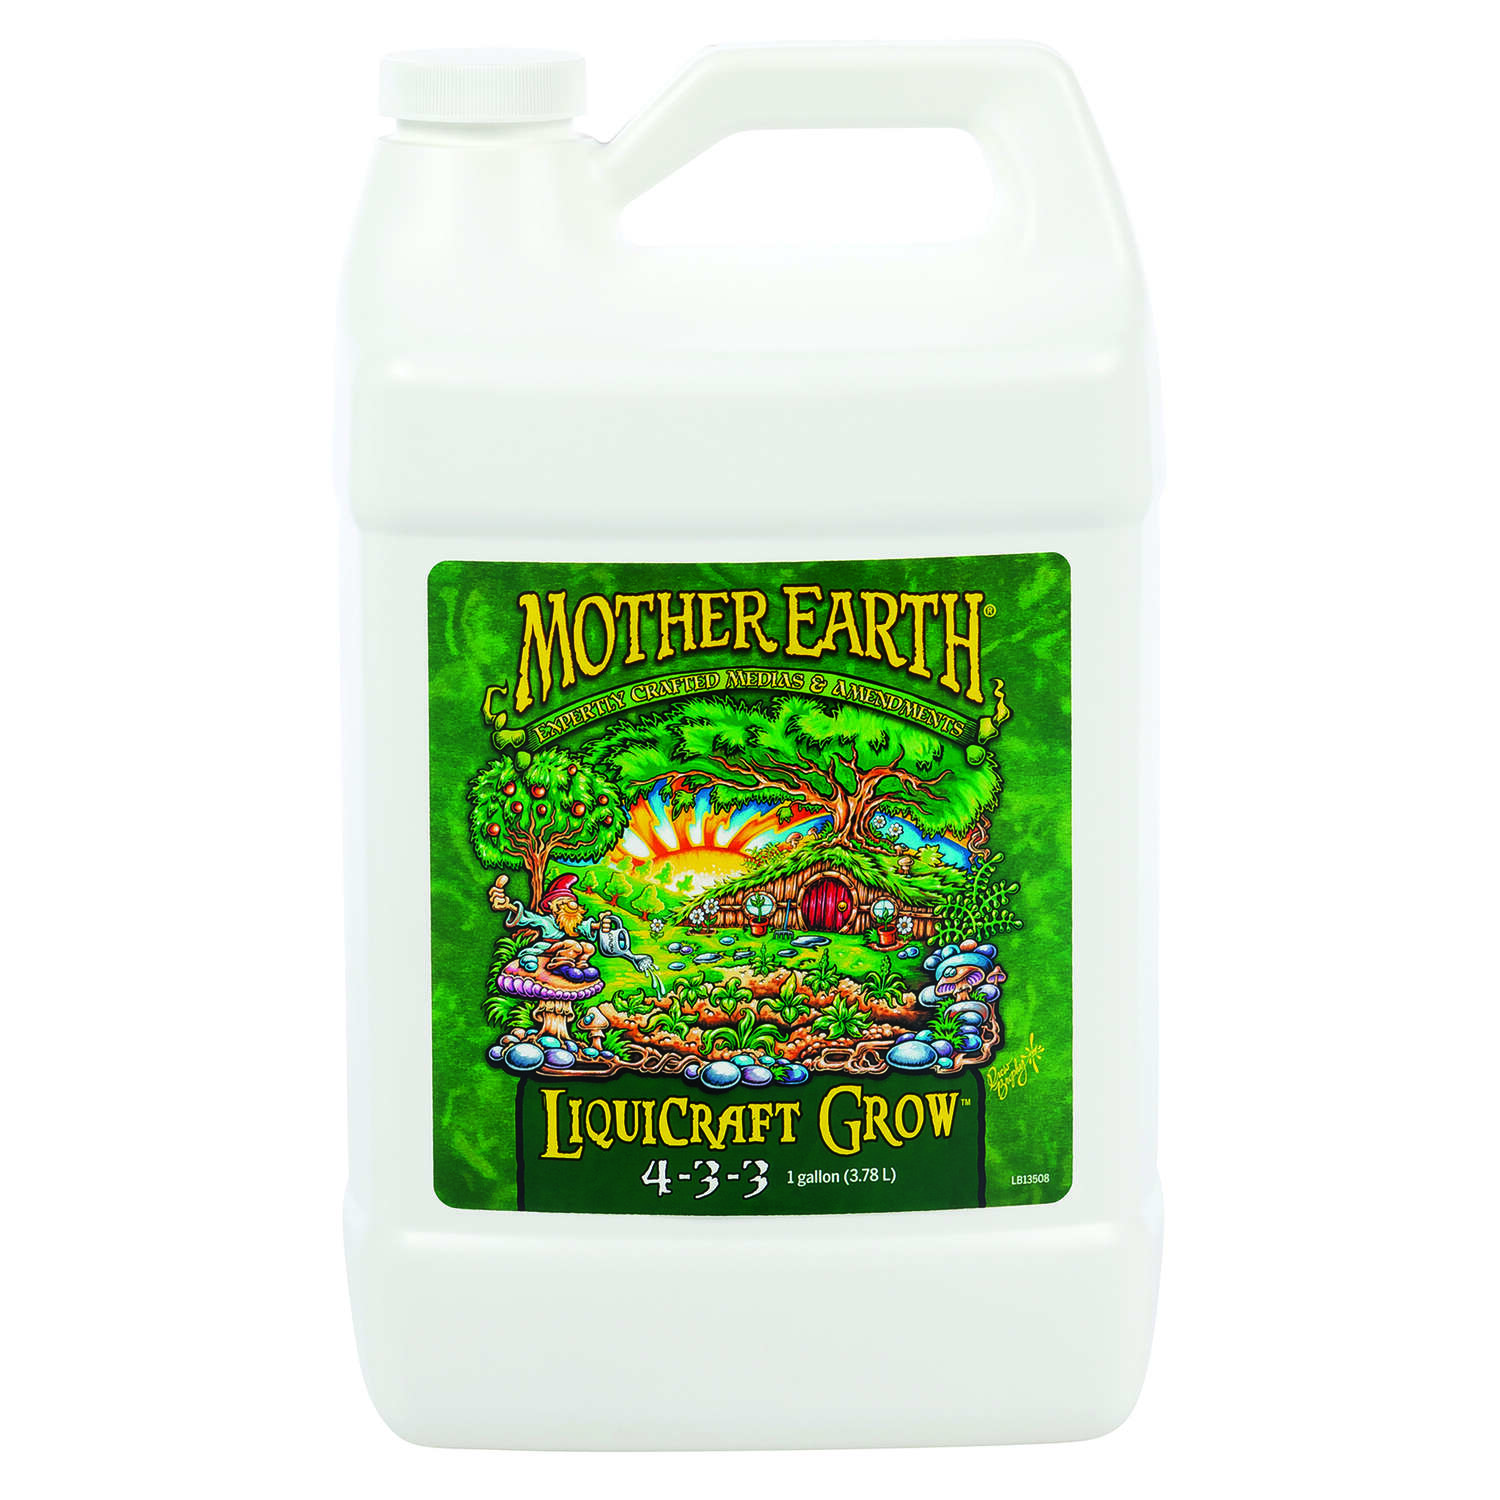 Mother Earth  LiquiCraft Grow 4-3-3  Hydroponic Plant Nutrients  1 gal.